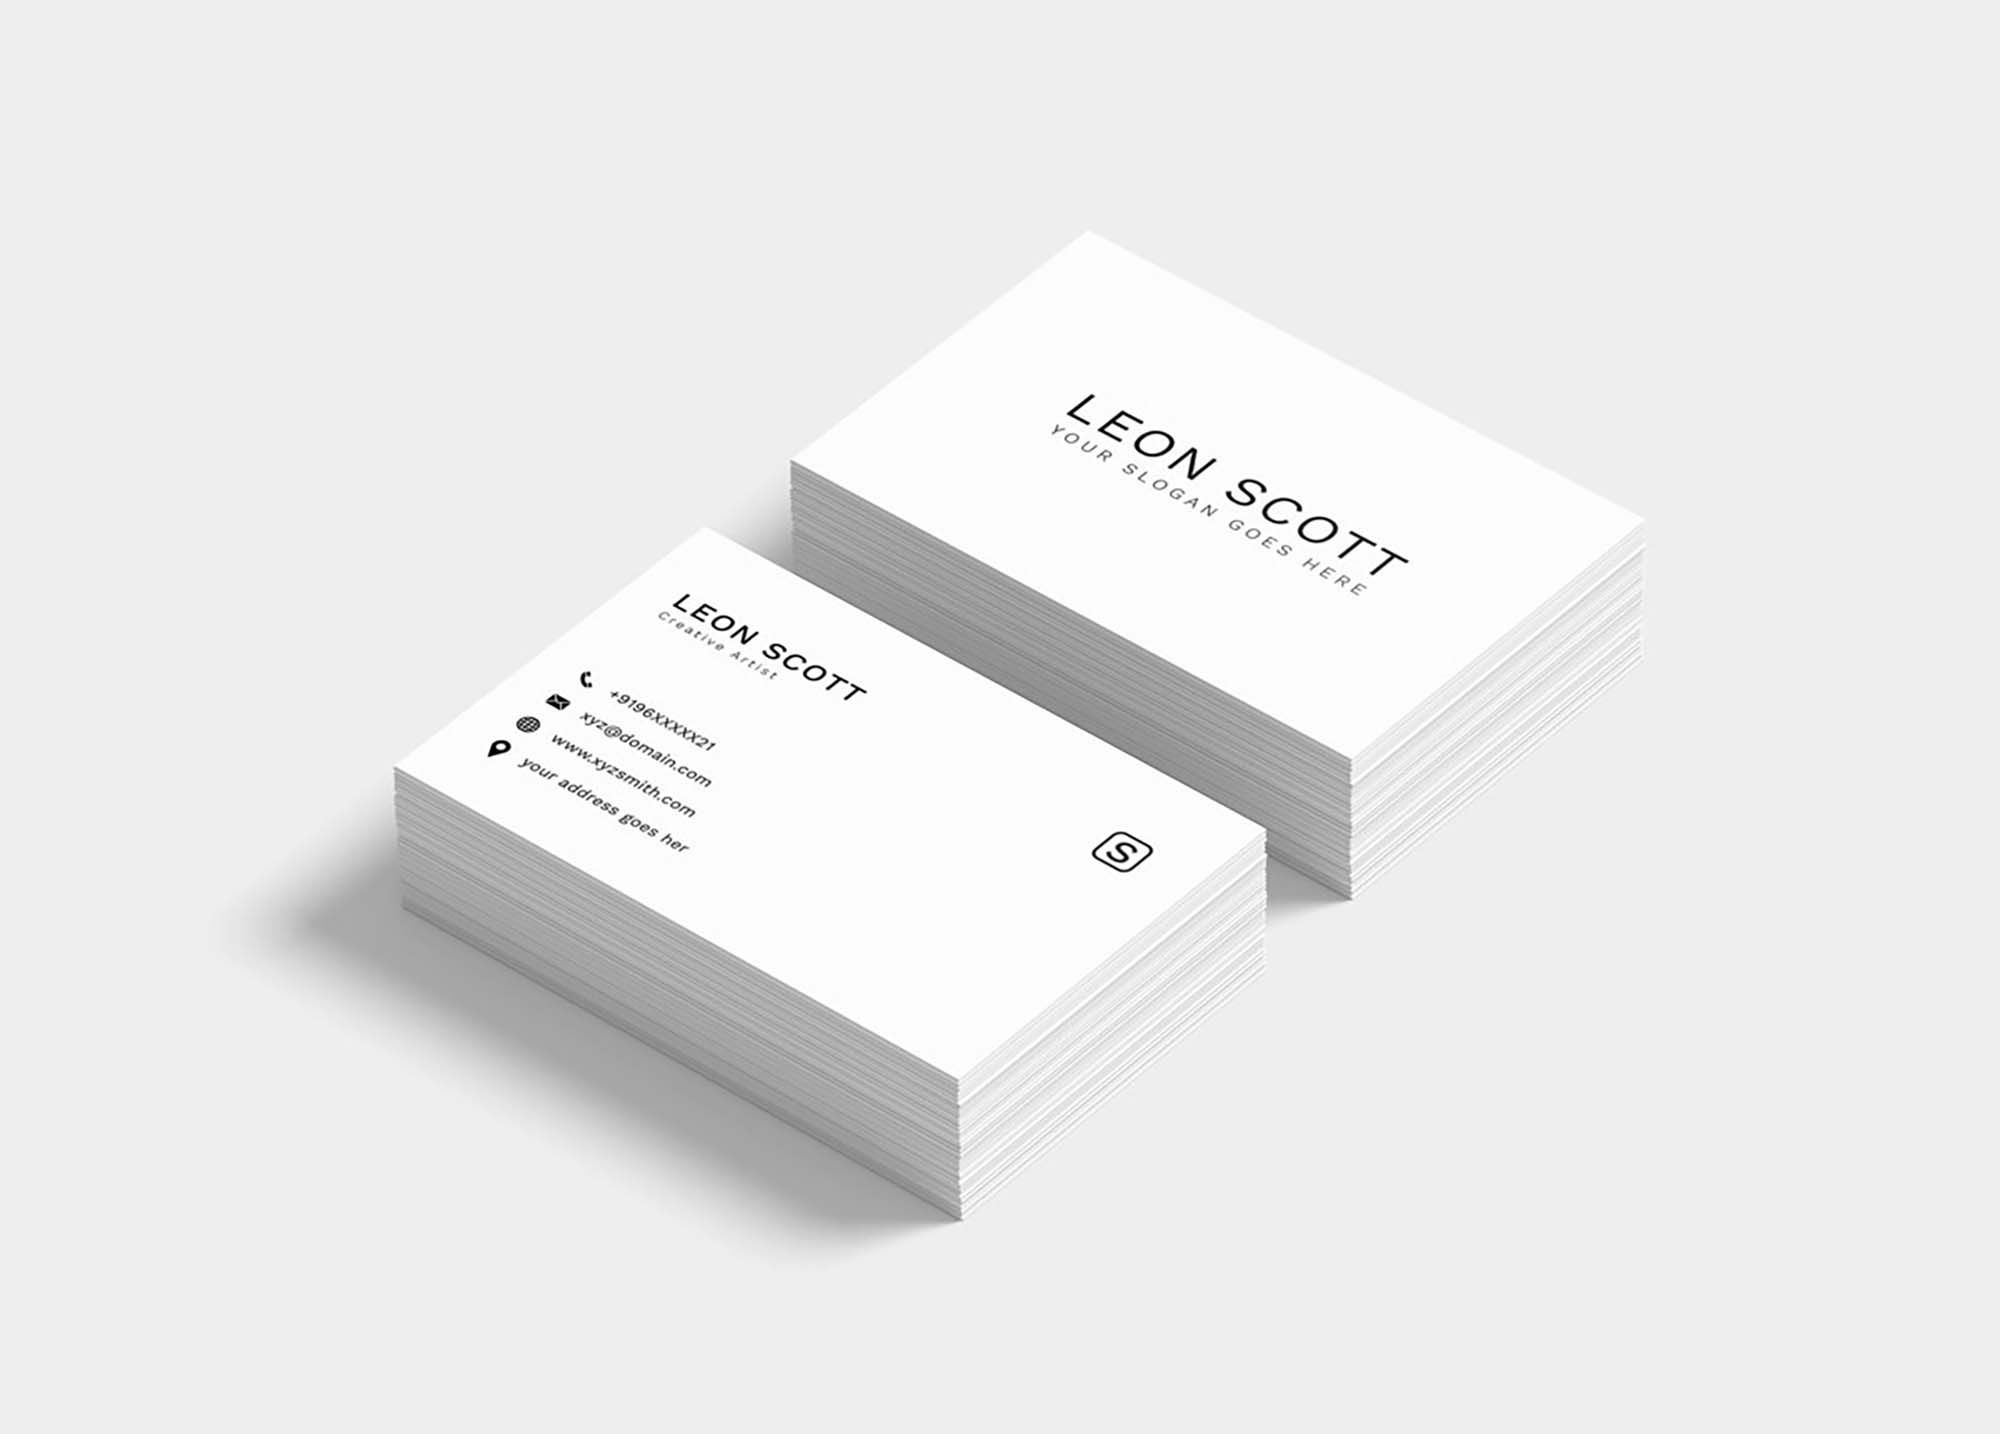 005 Imposing Minimal Busines Card Template Psd Inspiration  Simple Visiting Design In Photoshop File Free DownloadFull